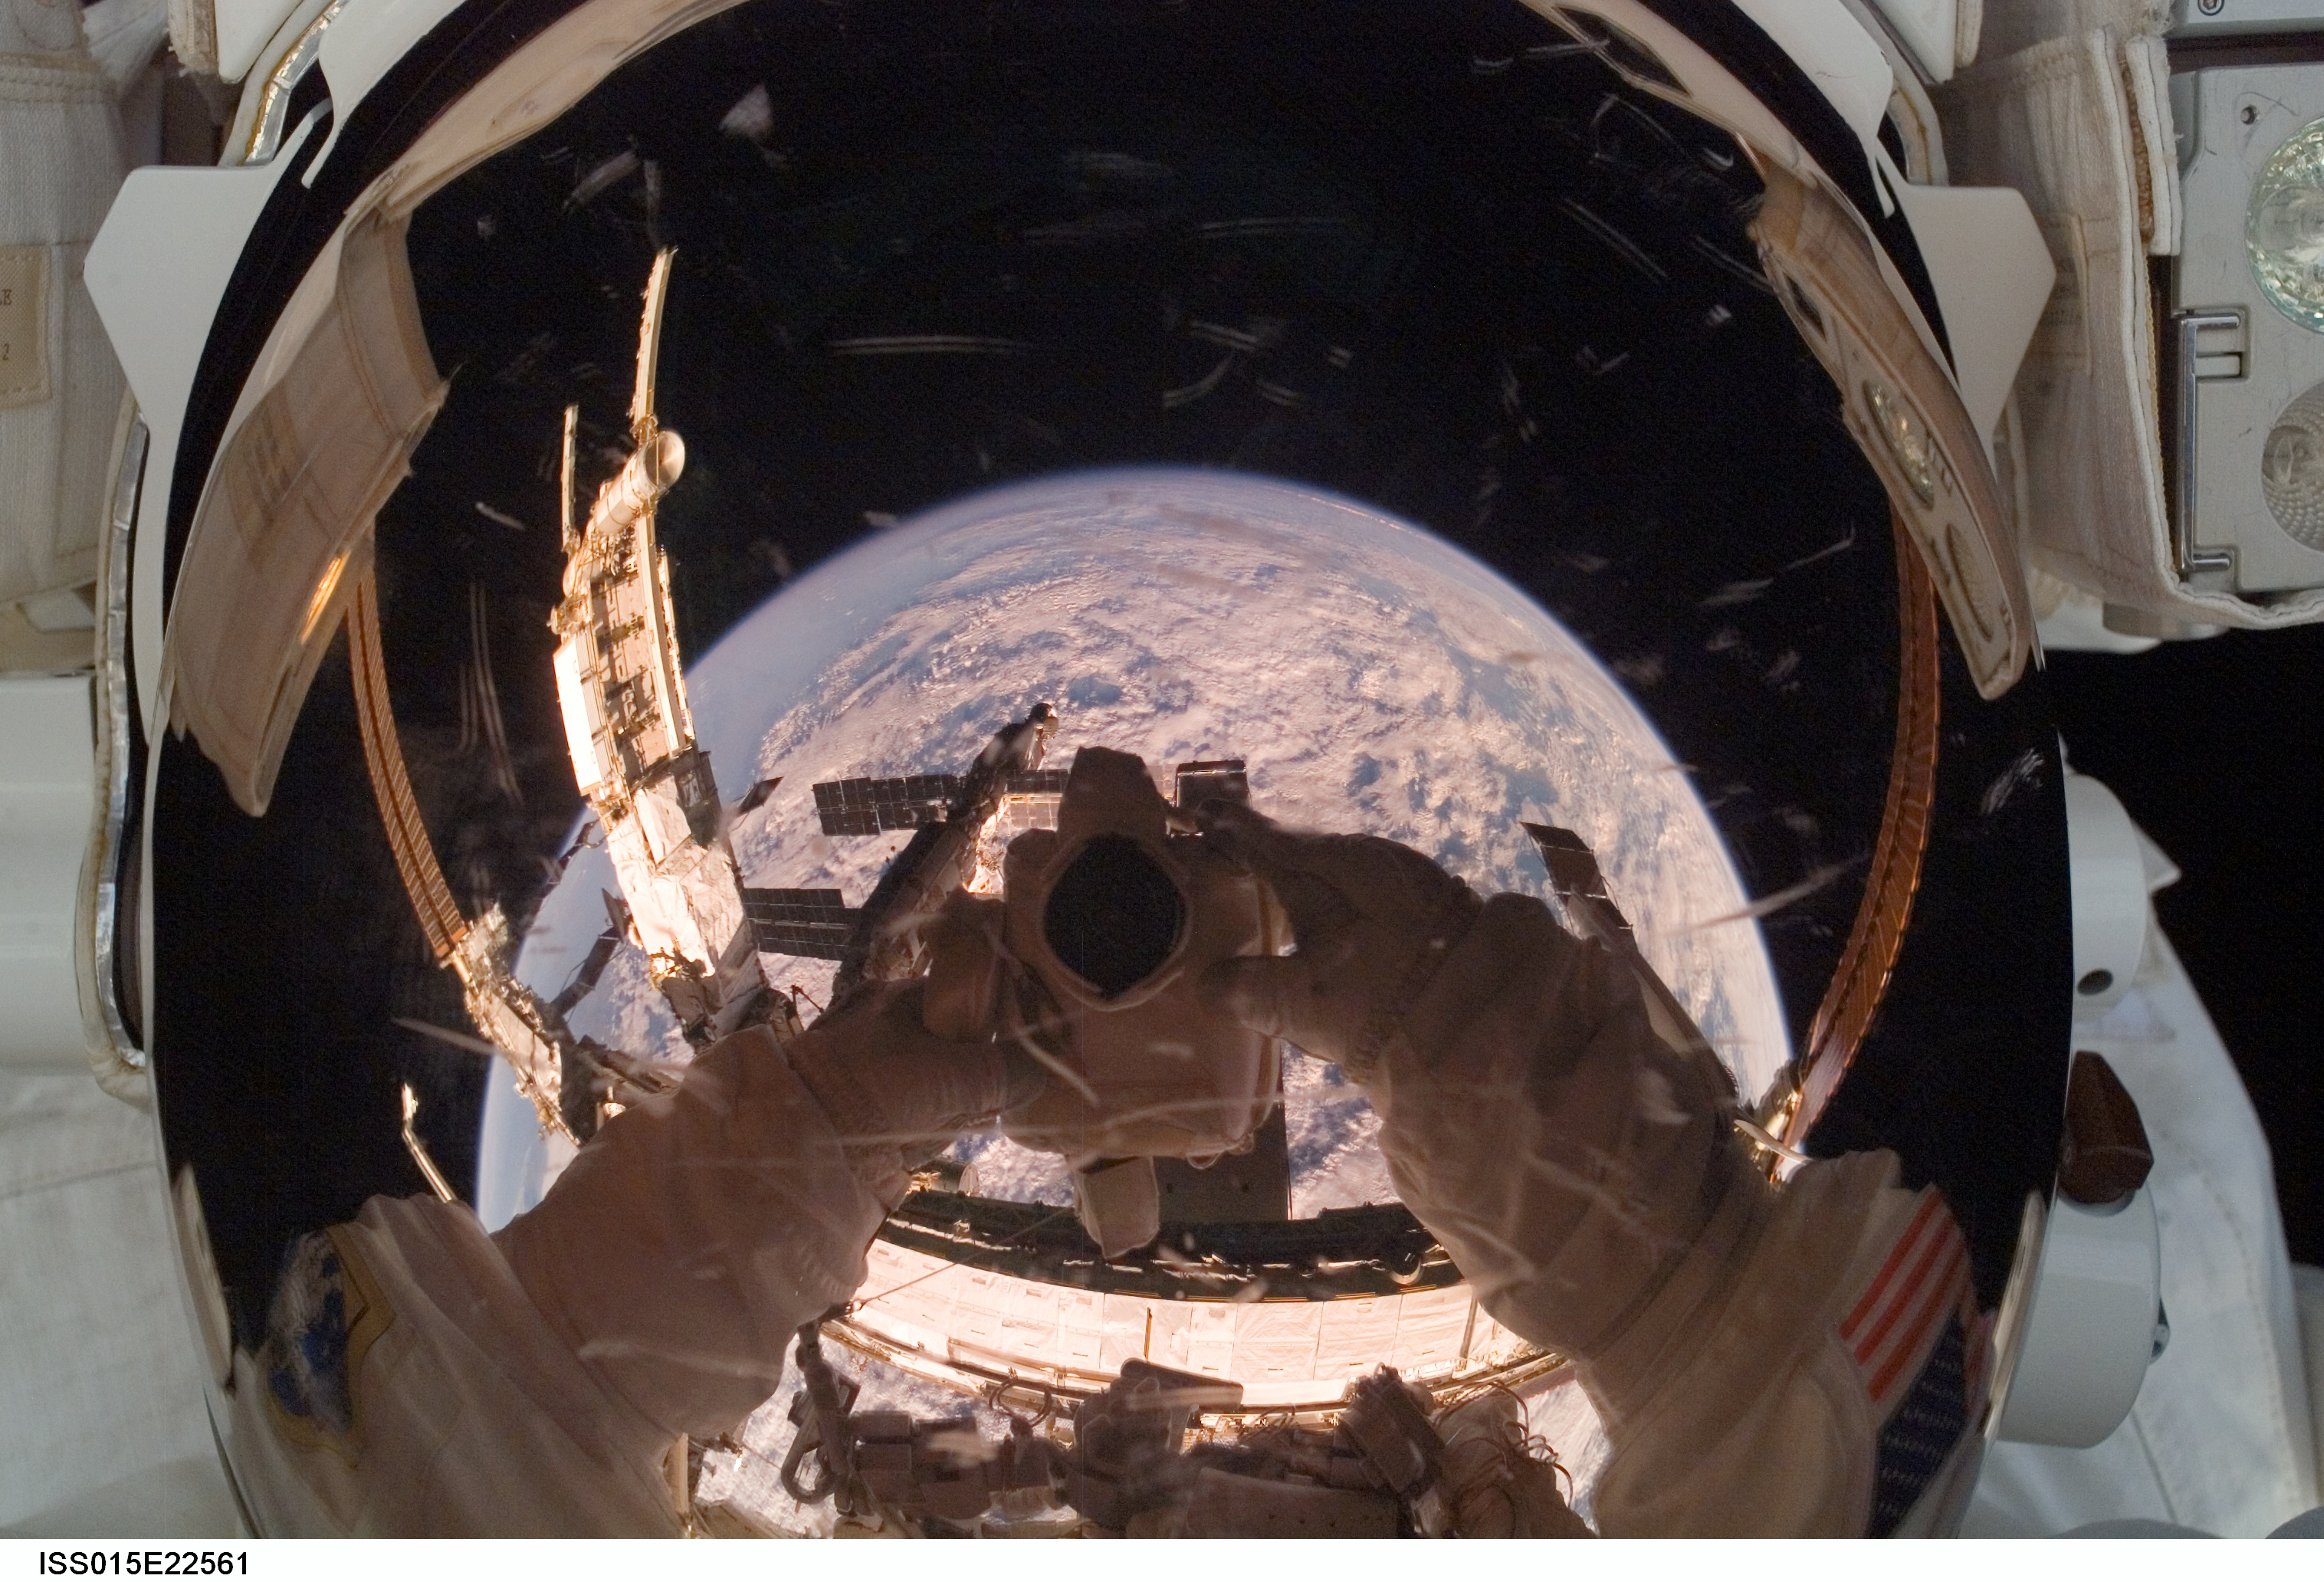 gpw 20061021 original NASA ISS015 E 22561 space ISS Expedition 15 Flight Engineer helmet visor reflections clouds Earth 20070815 Join Date: May 2010; Posts: 6540; Thanks: 0: Thanked 4 Times in 4 Posts